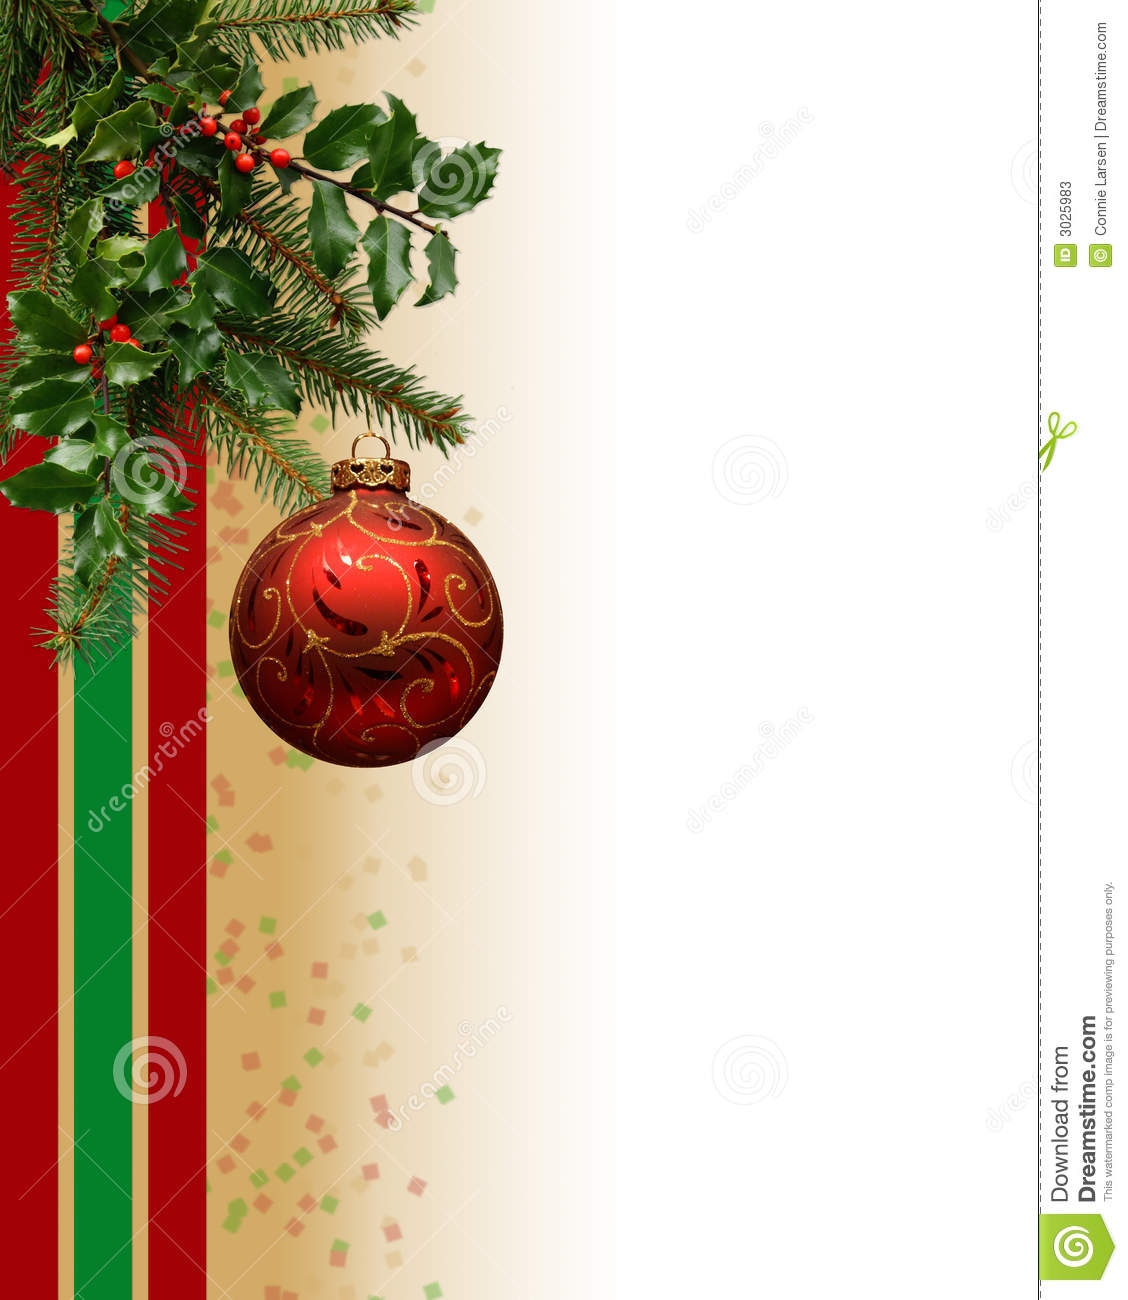 Elegant christmas ornament clipart suggest